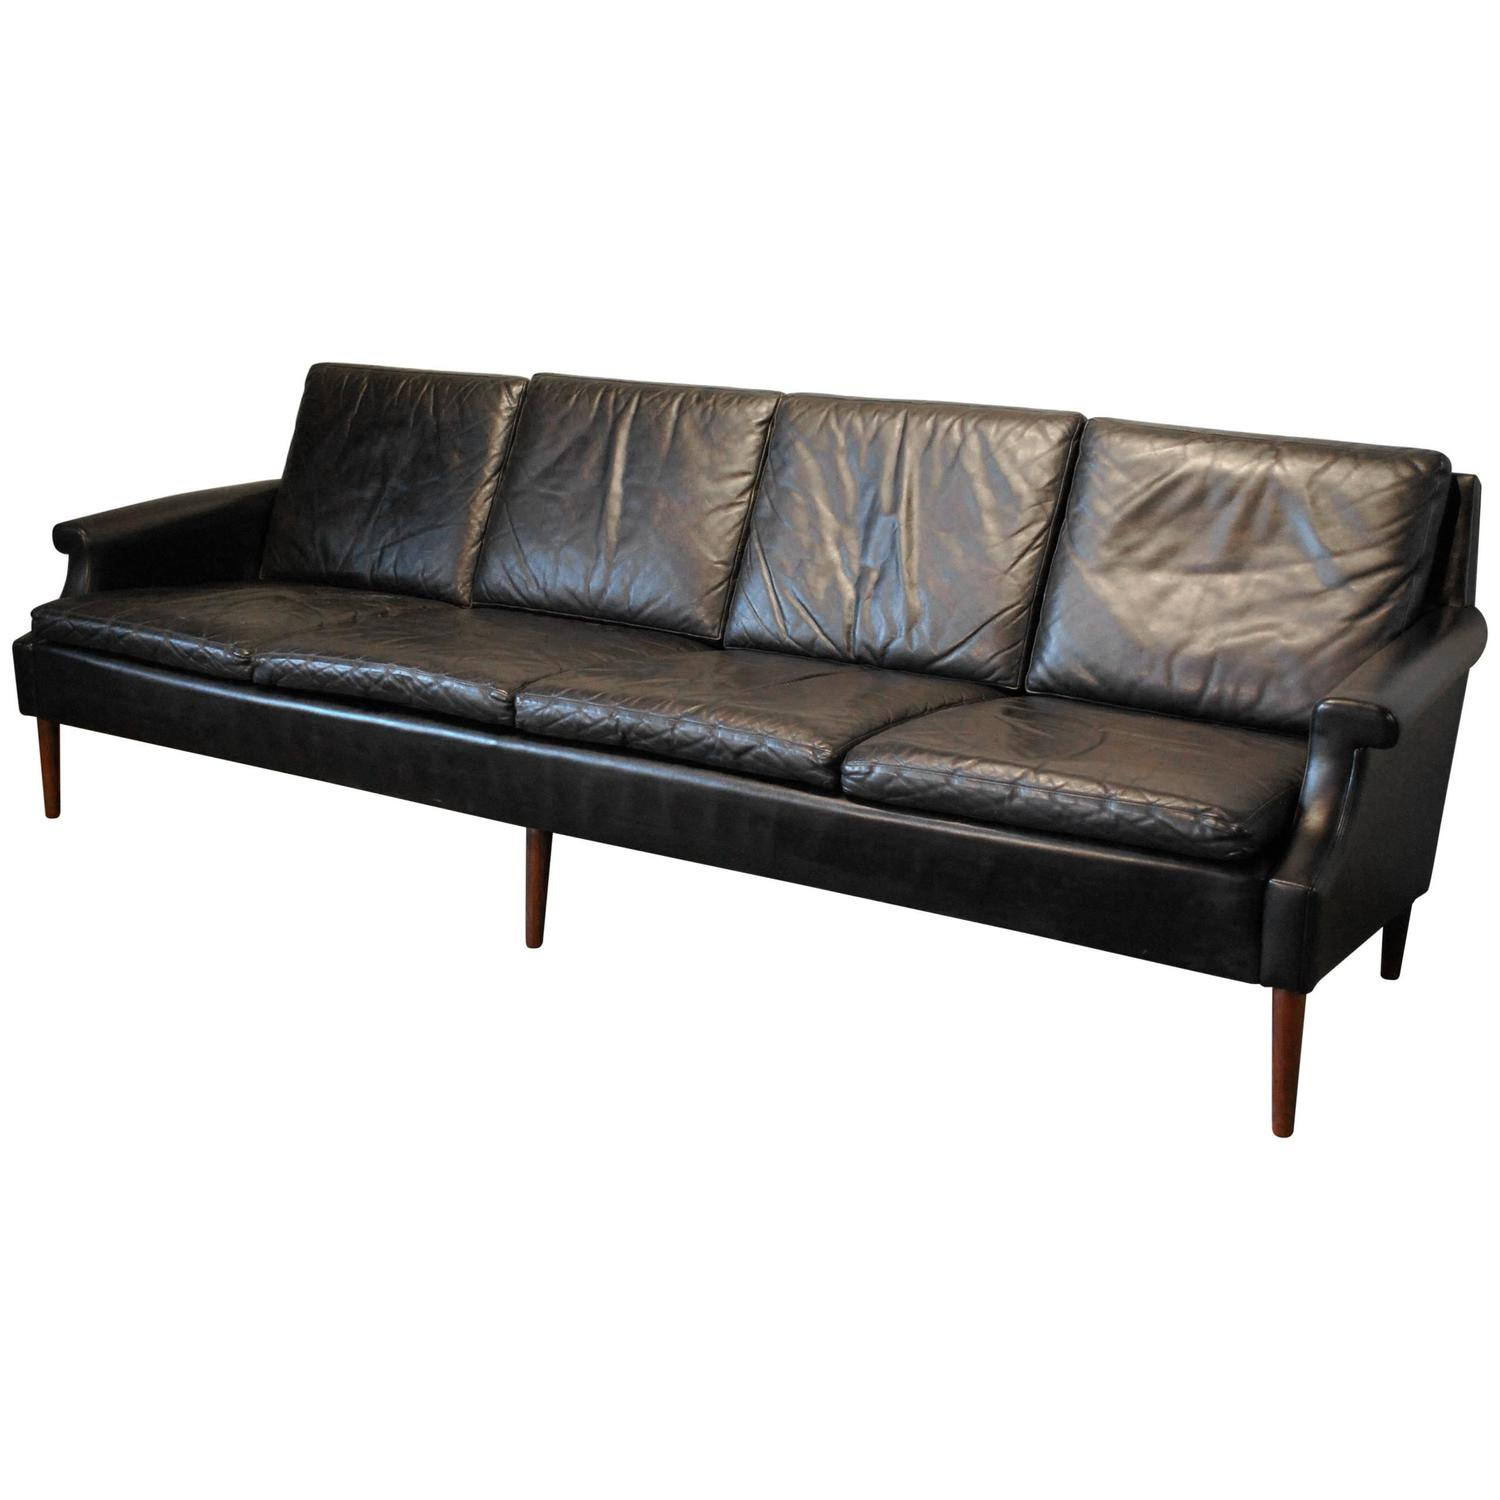 Danish Modern Henredon Sectional Sofa with Corner Storage Case